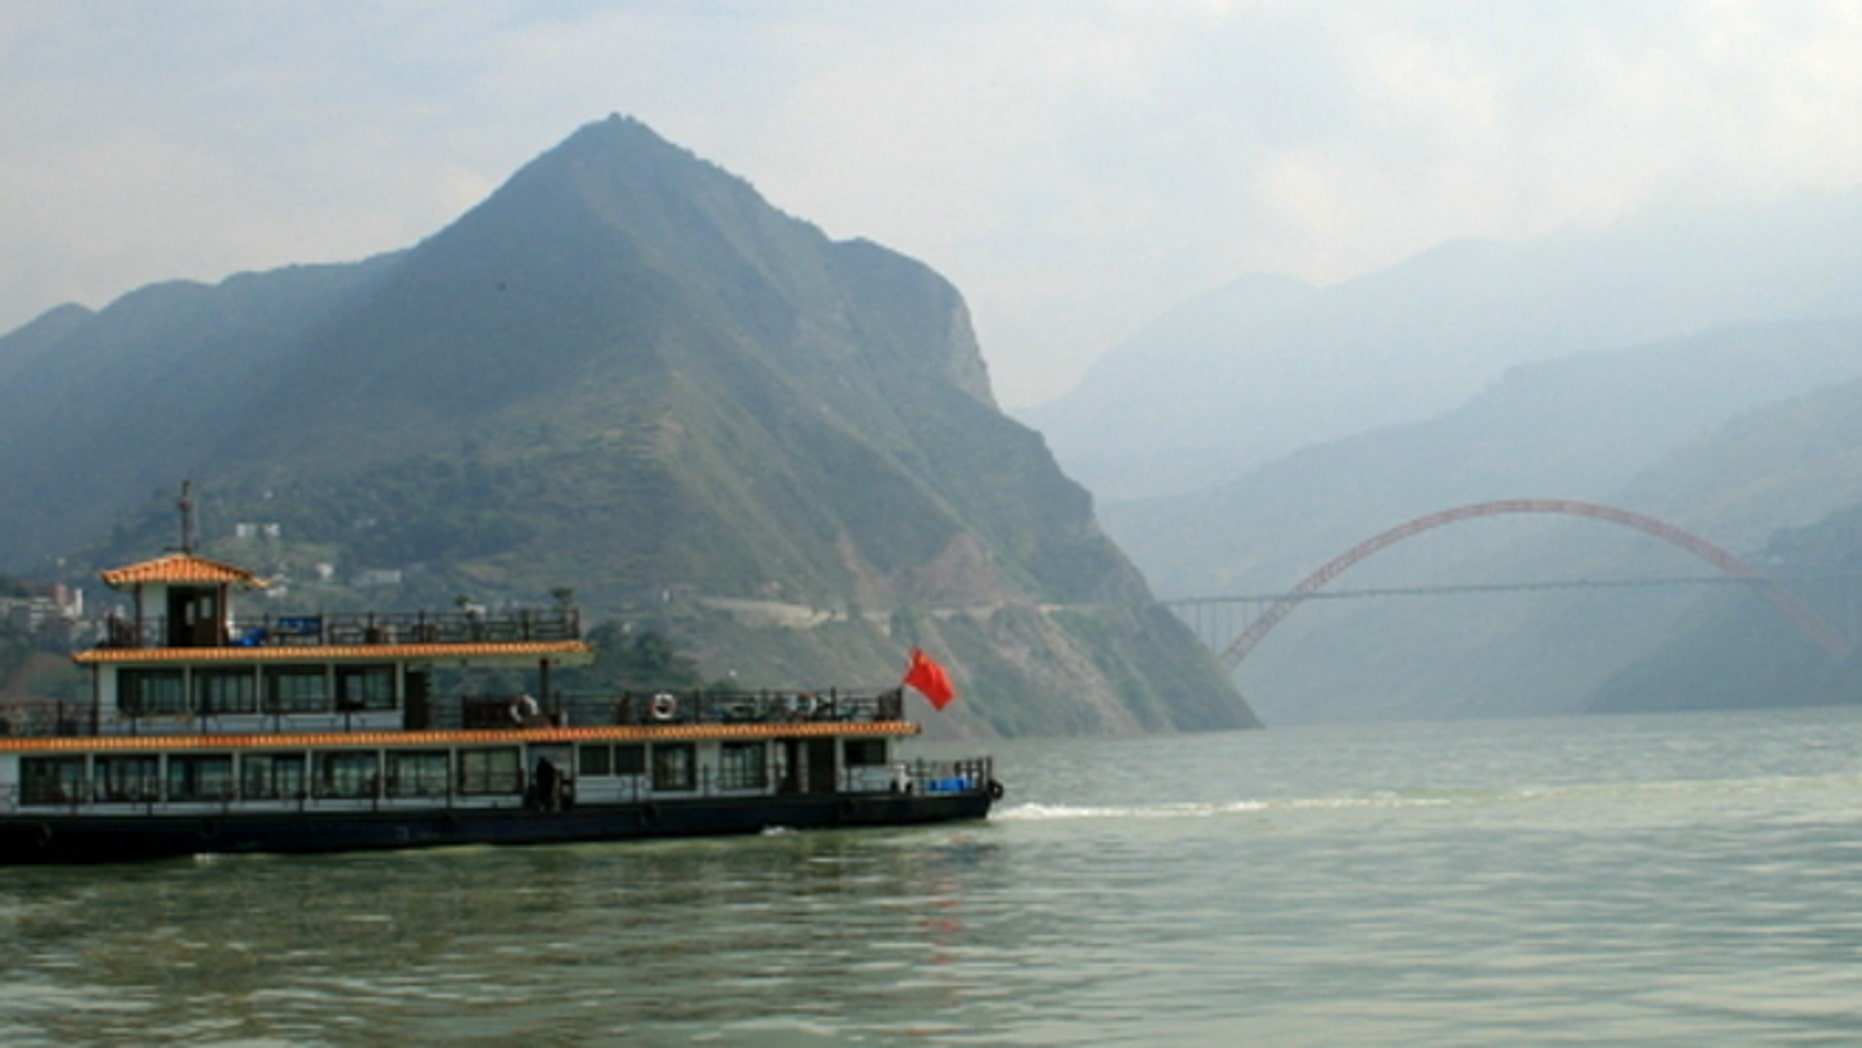 The Yangtze River's most famous sites include the incredible Three Gorges and the gargantuan Three Gorges Dam.